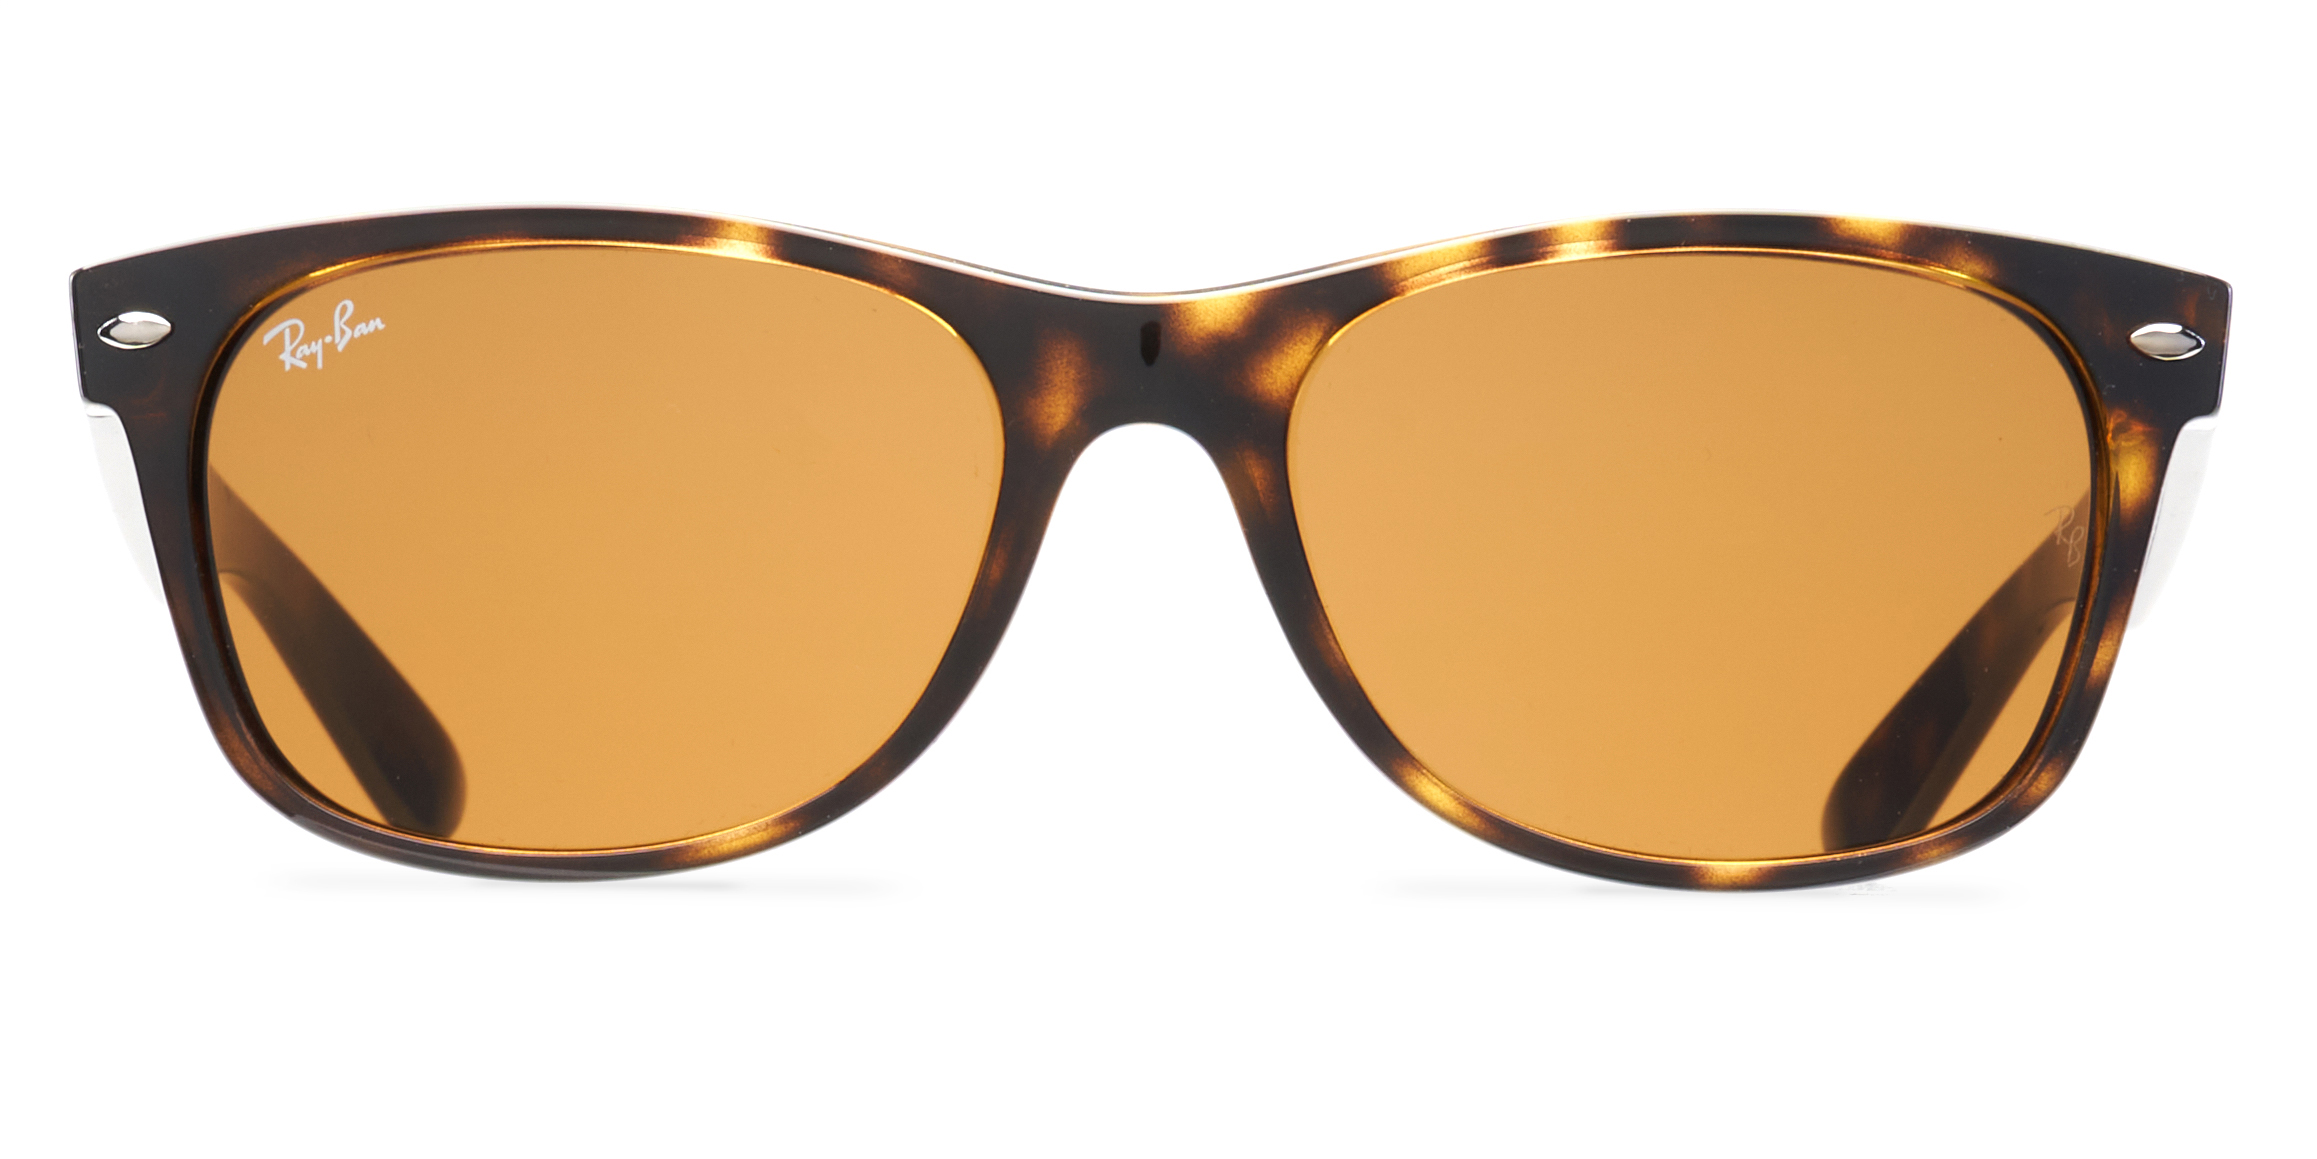 Ray Ban Sunglasses RB2132 710 55